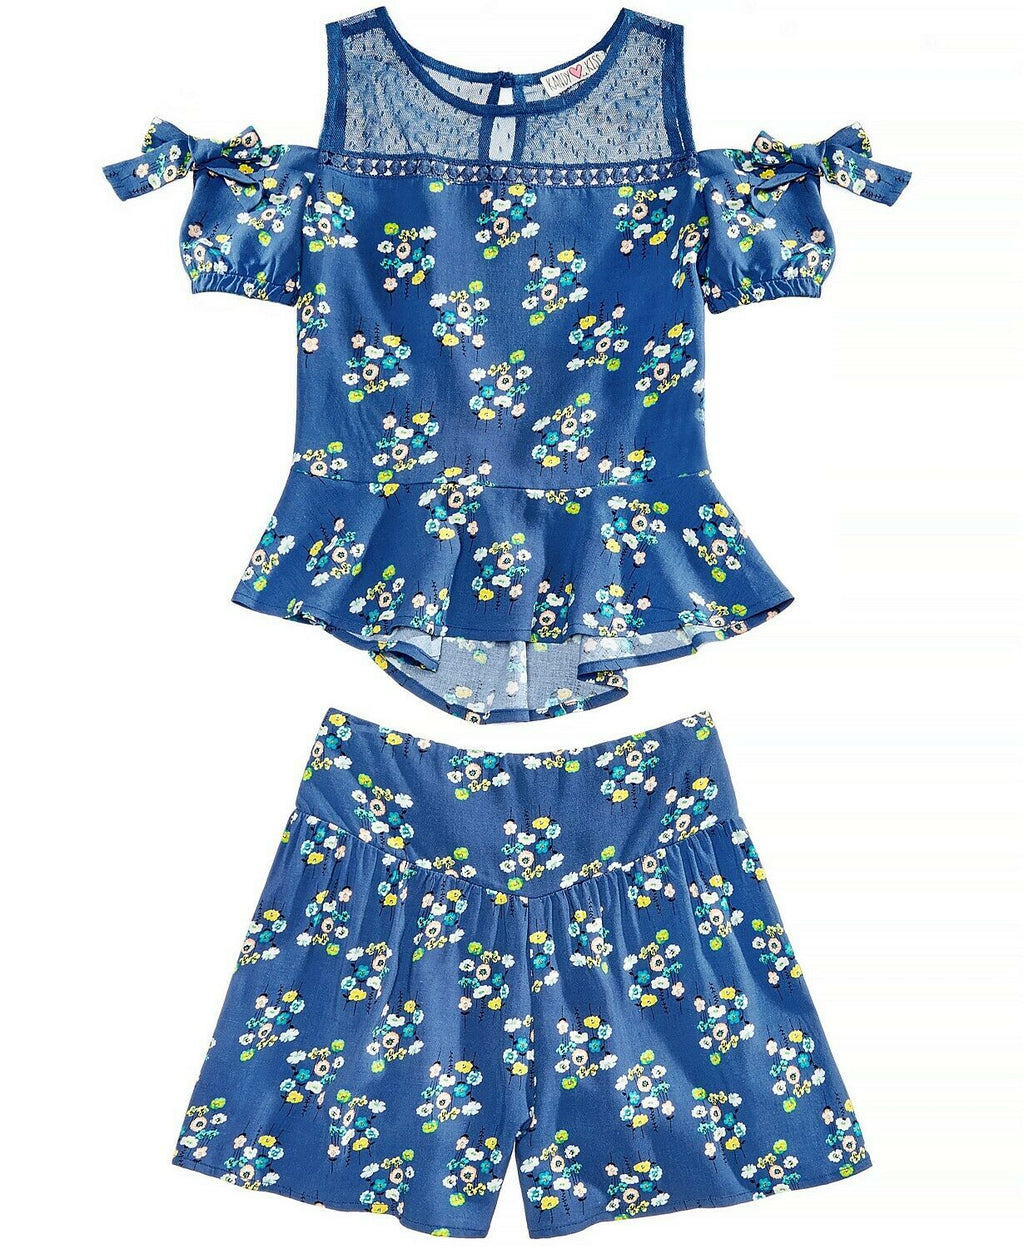 NWT Kandy Kiss Big Girls 2 Piece Floral-Print Top and Shorts Set, Sz. L